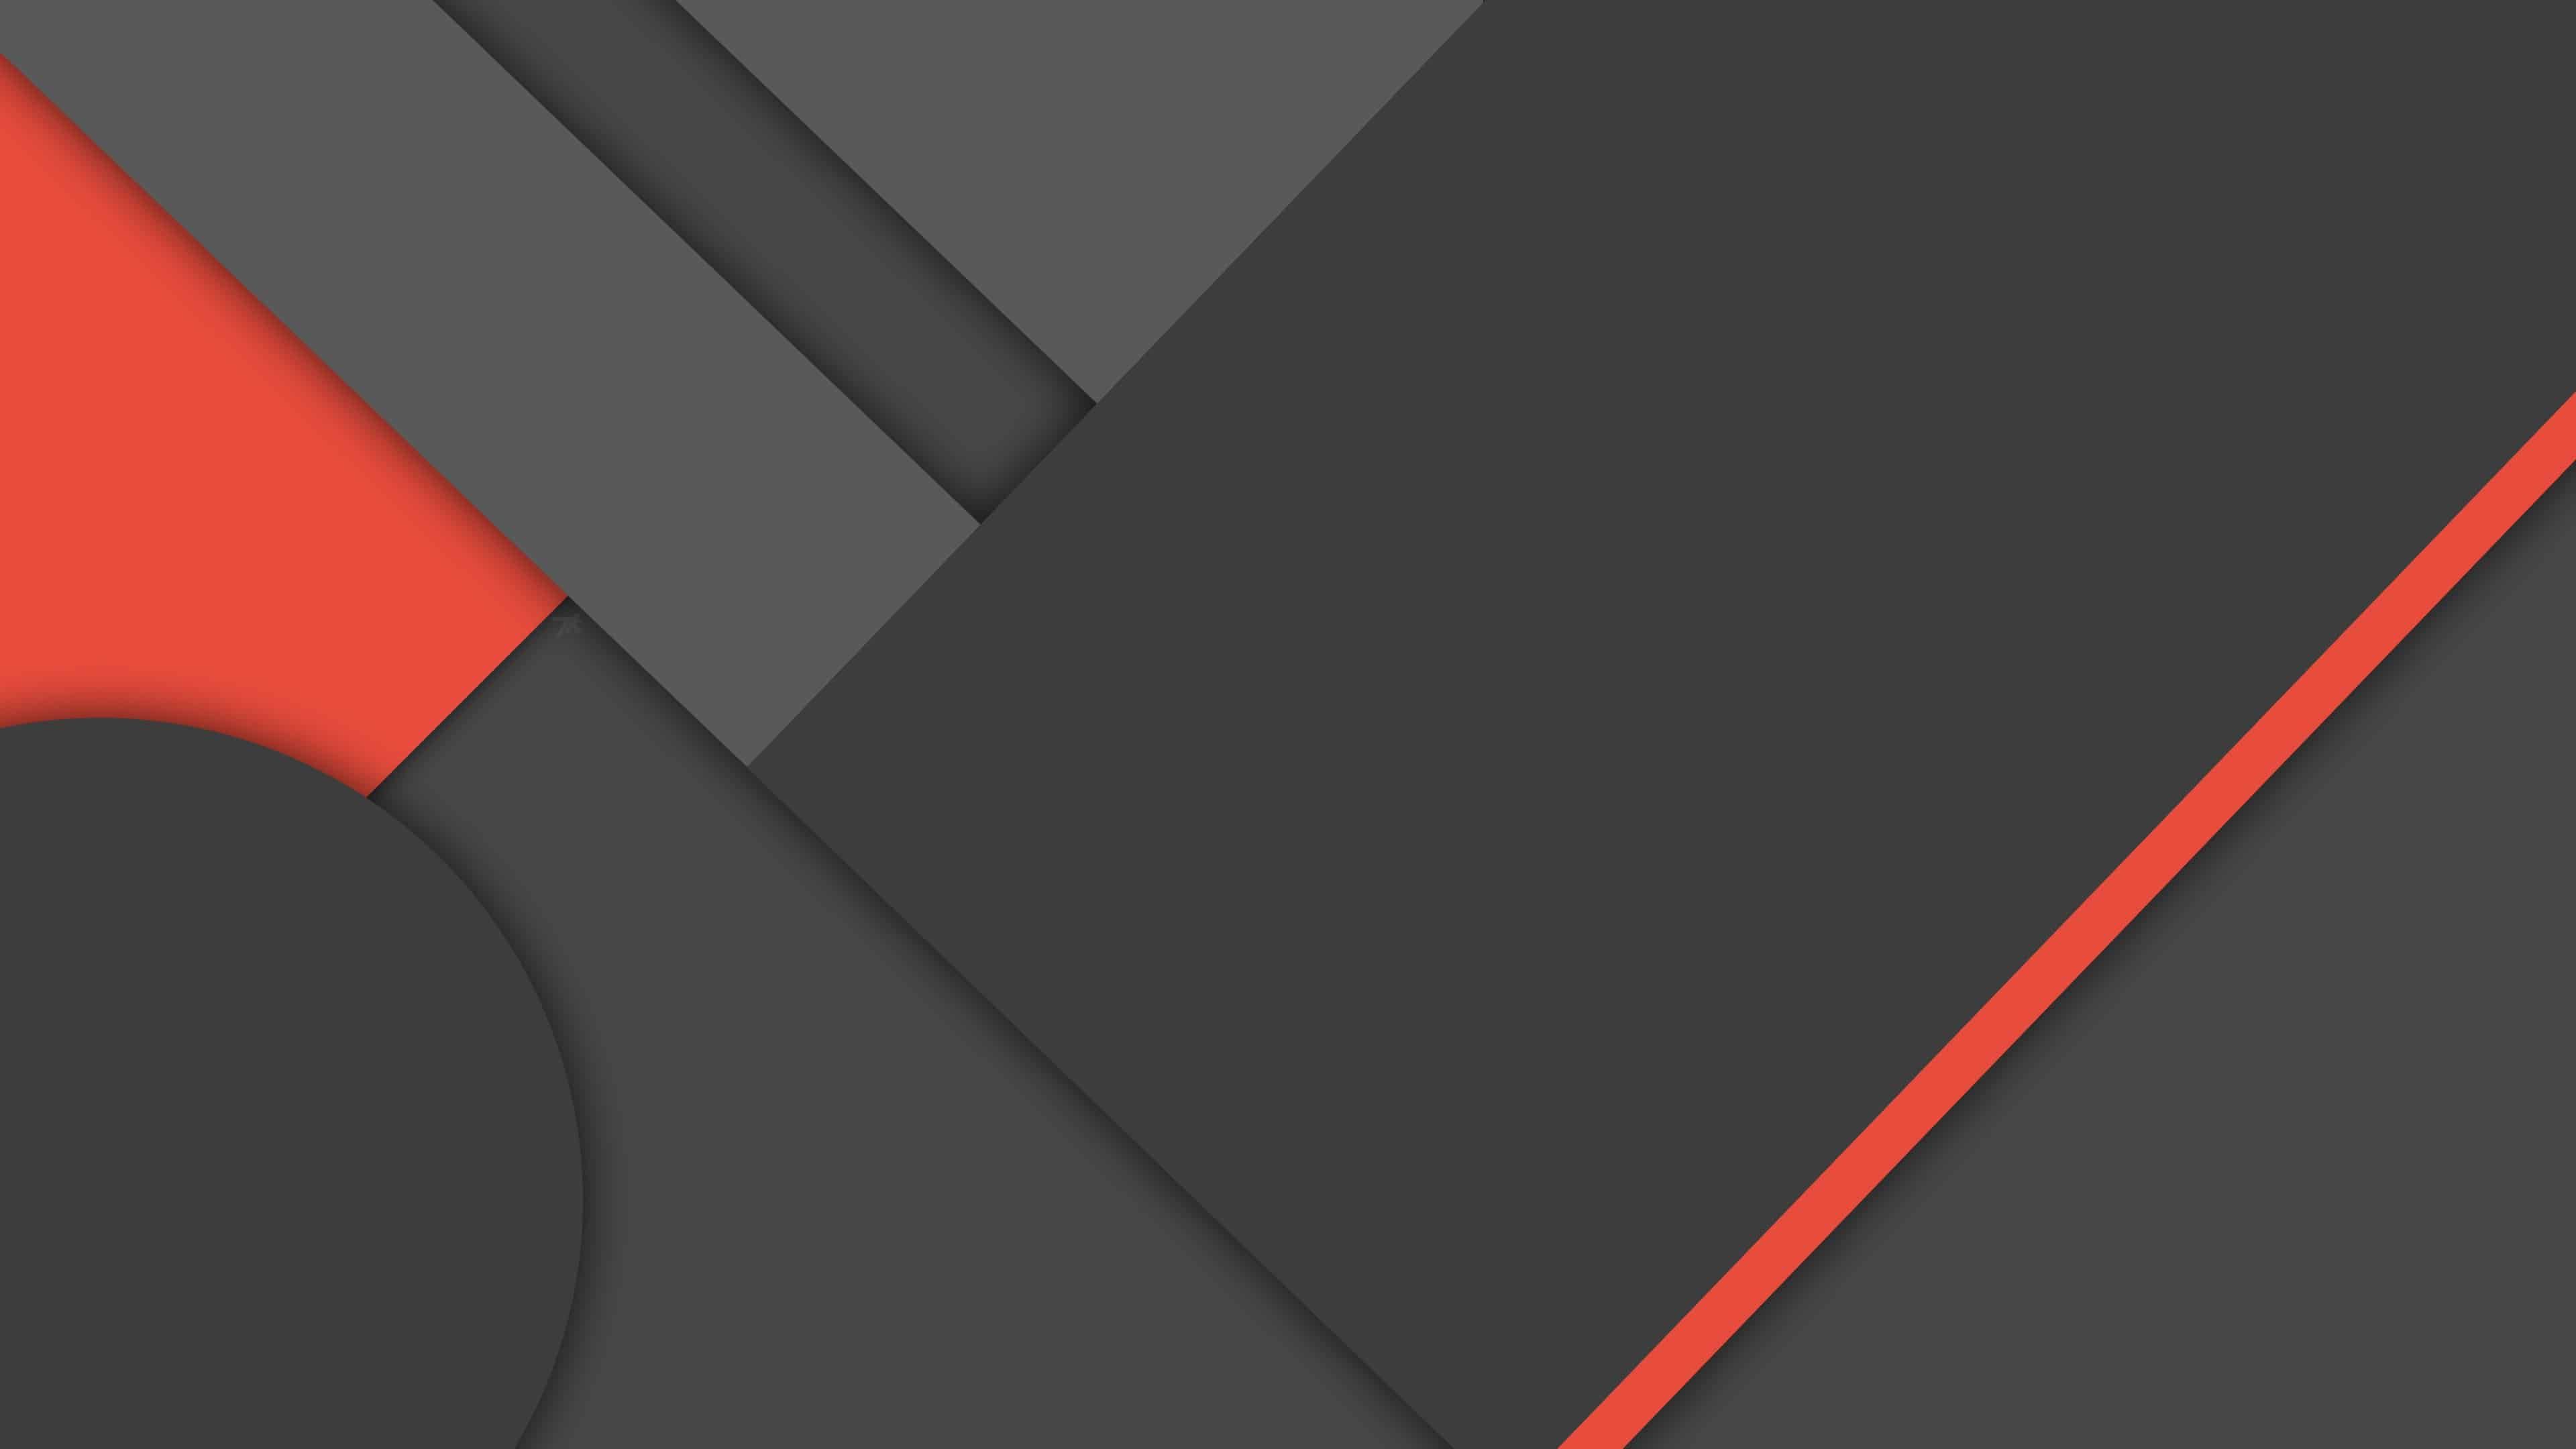 Material Design Black And Red Uhd 4k Wallpaper Pixelz